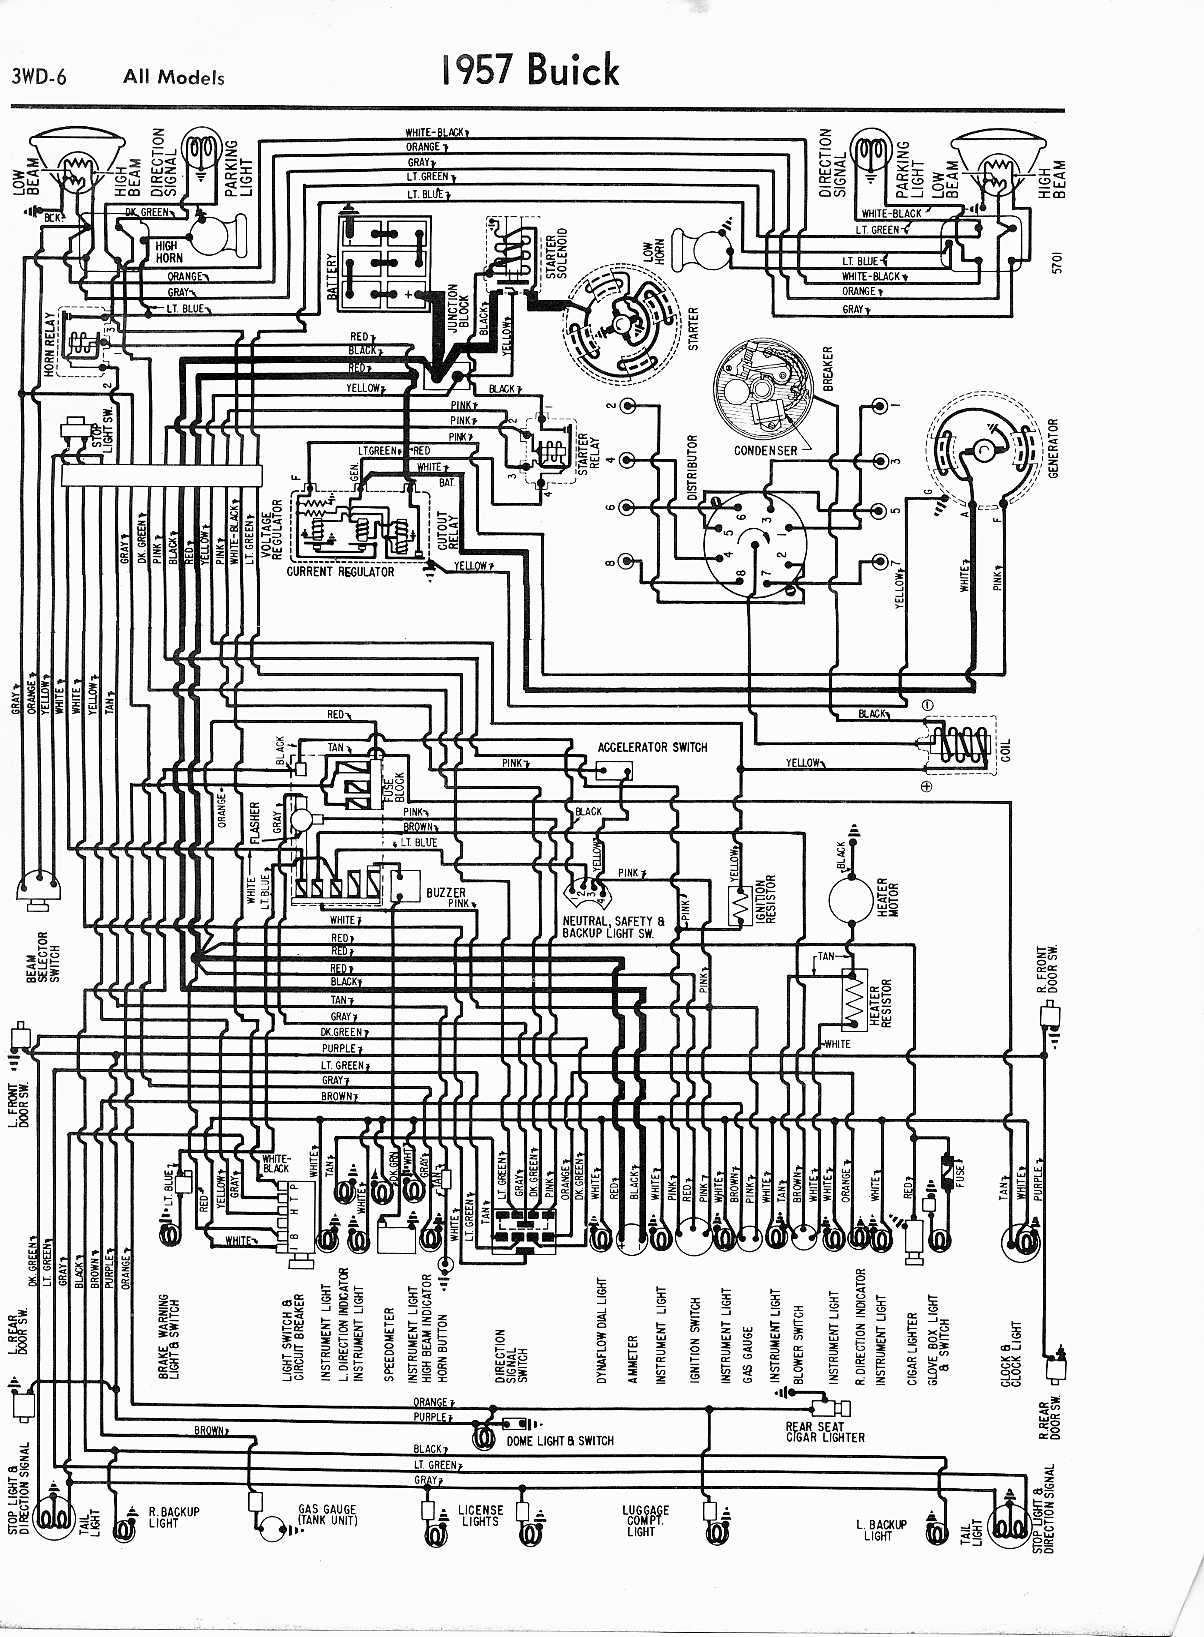 [DIAGRAM] 2003 Buick Lesabre Wiring Diagram FULL Version ...